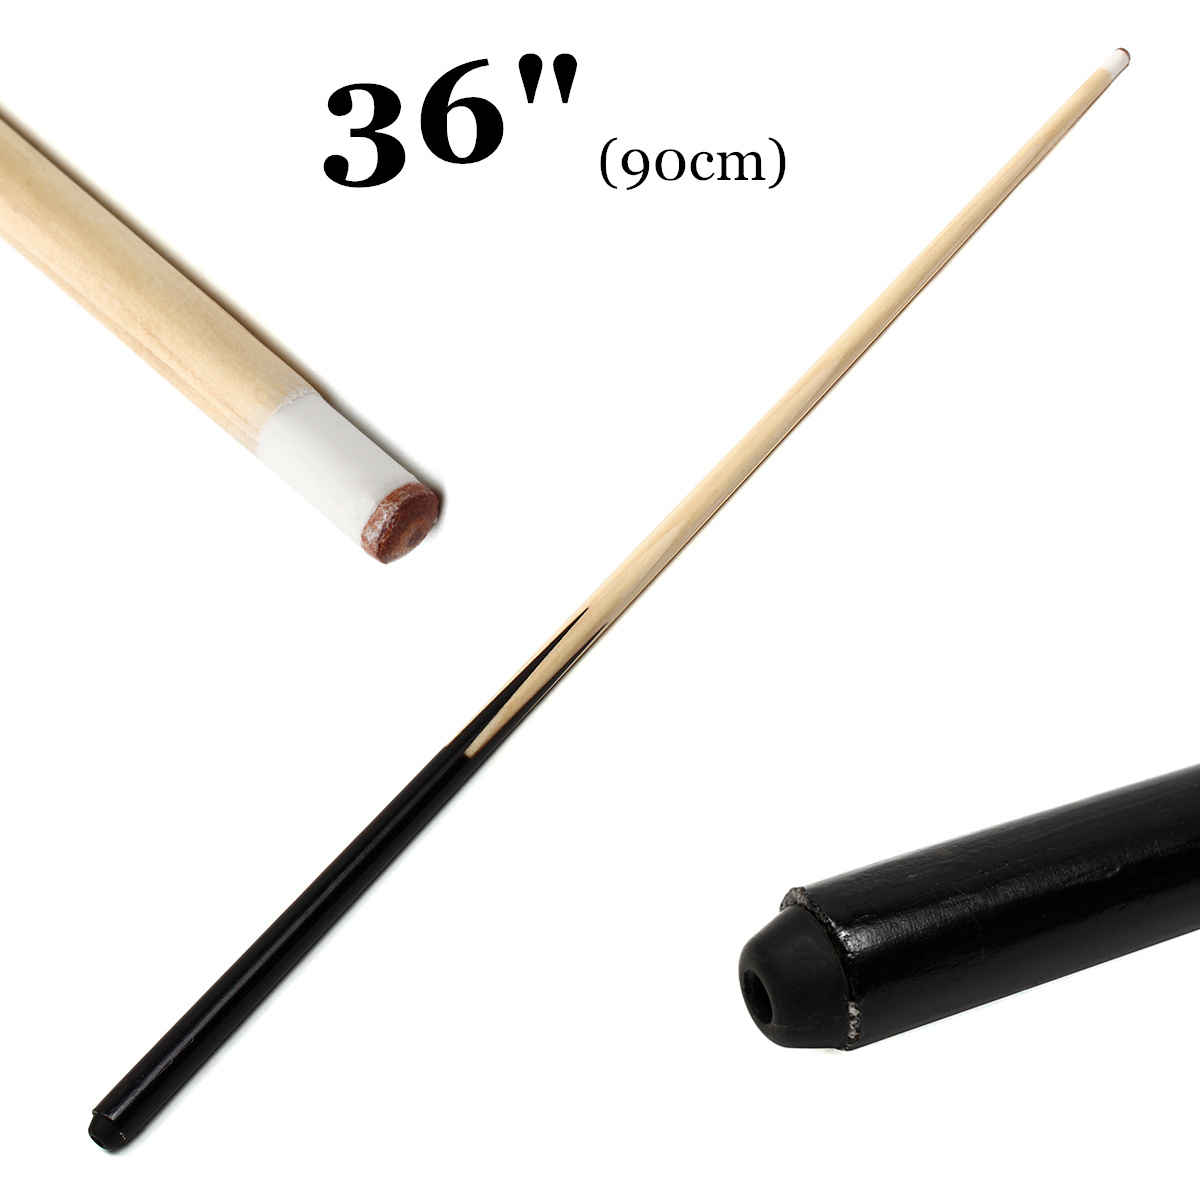 1Pcs 90cm Wooden Pool Cue Billiard House Bar Pool Cue Sticks Entertainment Snooker Billiard Tools For Kids Home Small Room